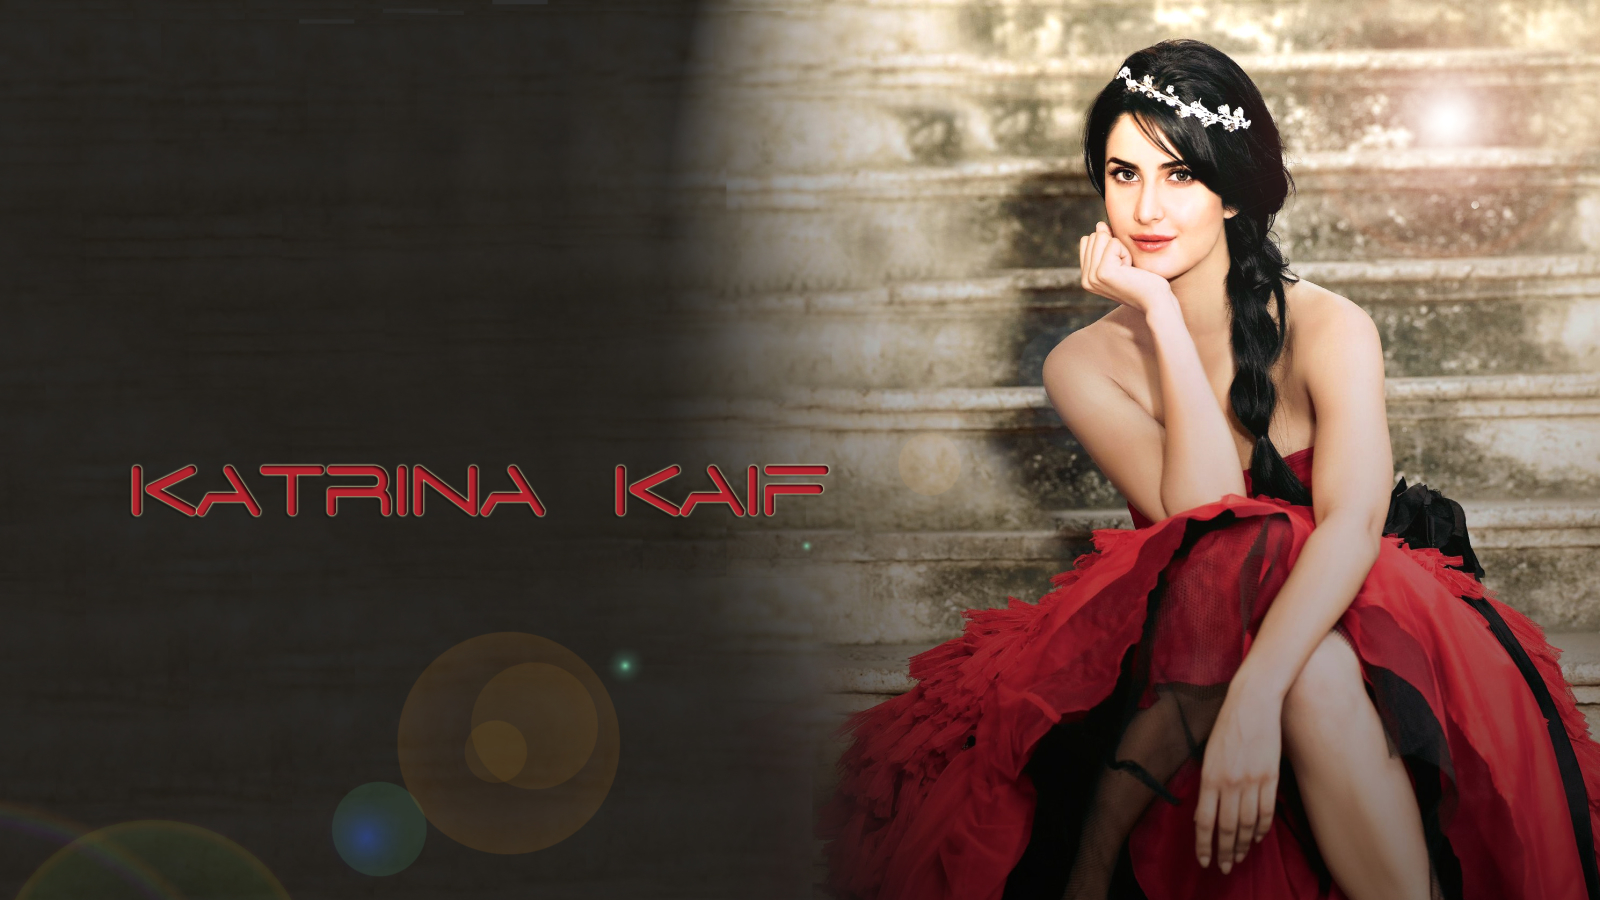 1600x900 Katrina Kaif Images Download 1600x900 Resolution